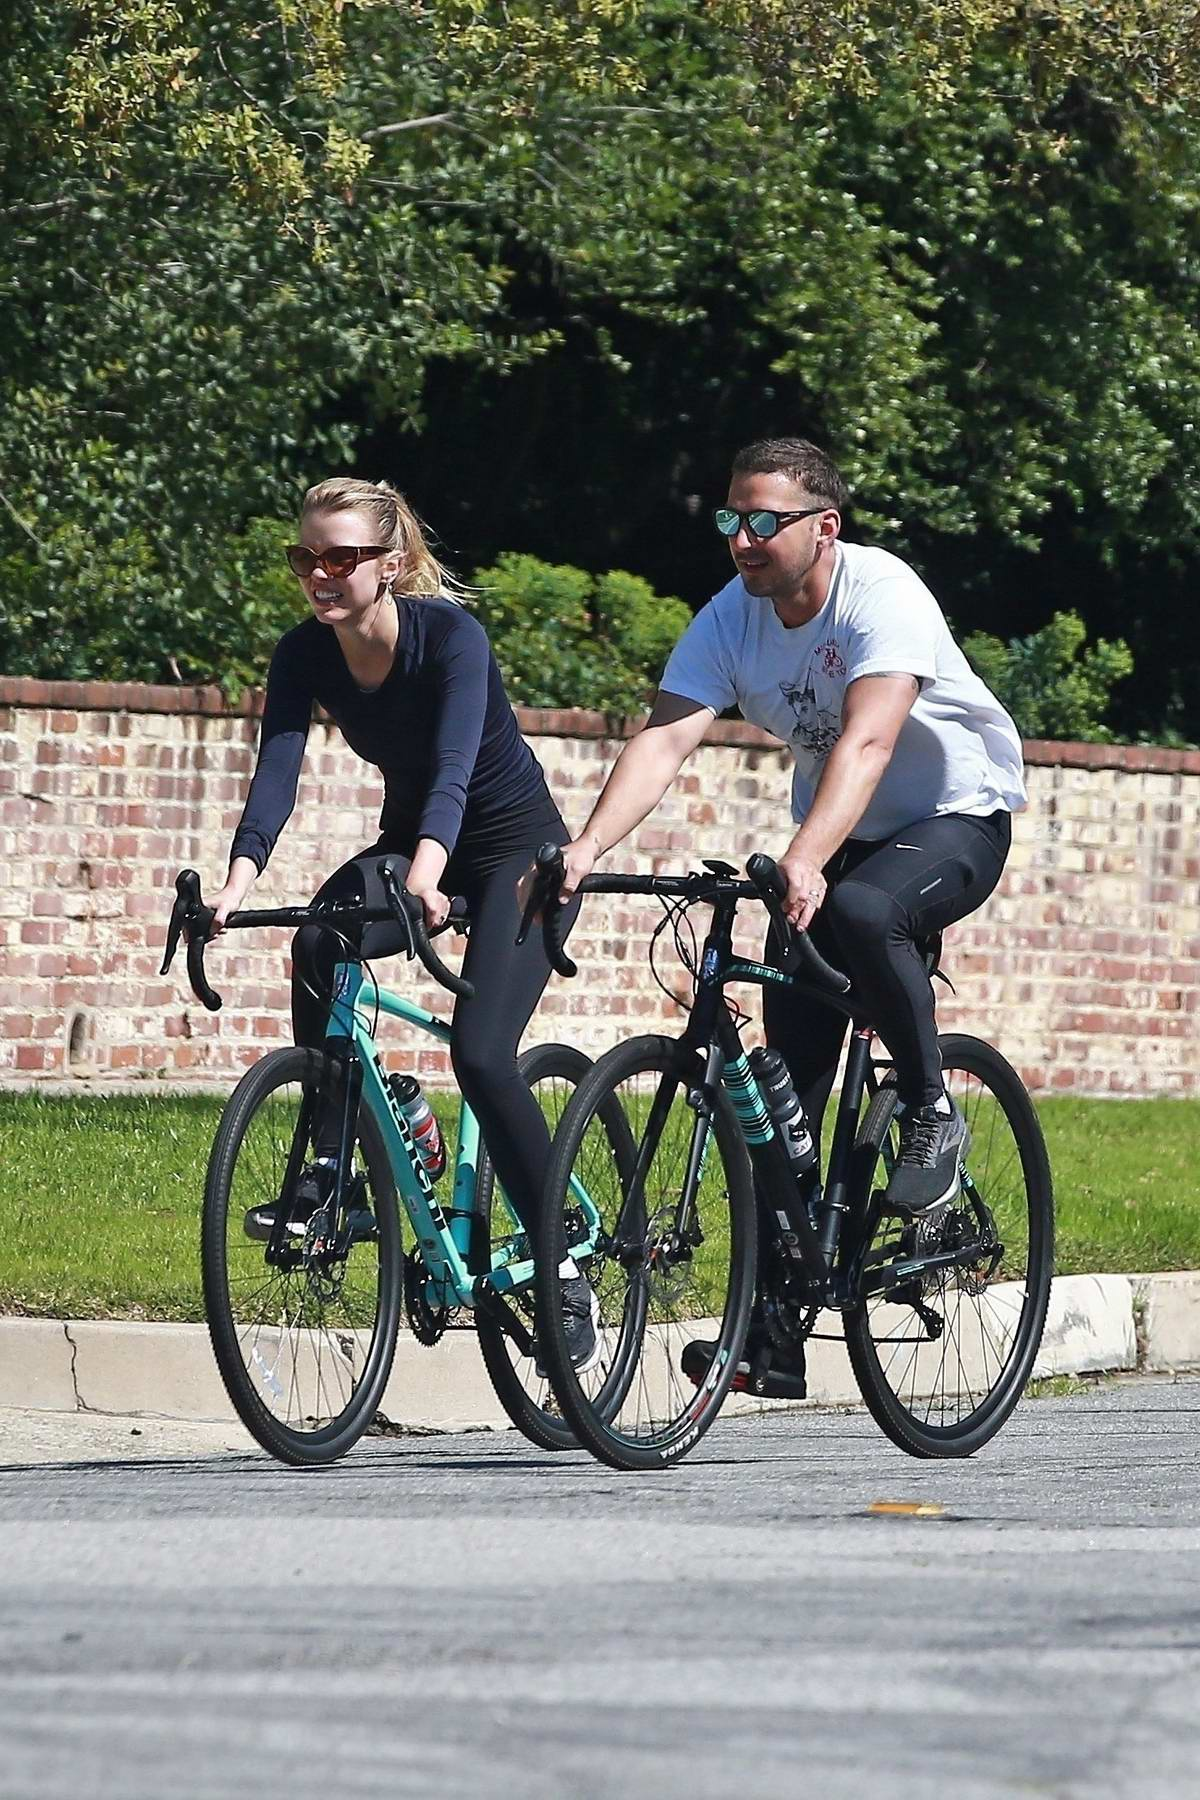 Mia Goth and Shia LaBeouf get back on their bikes and go for a ride around their neighborhood in Pasadena, California